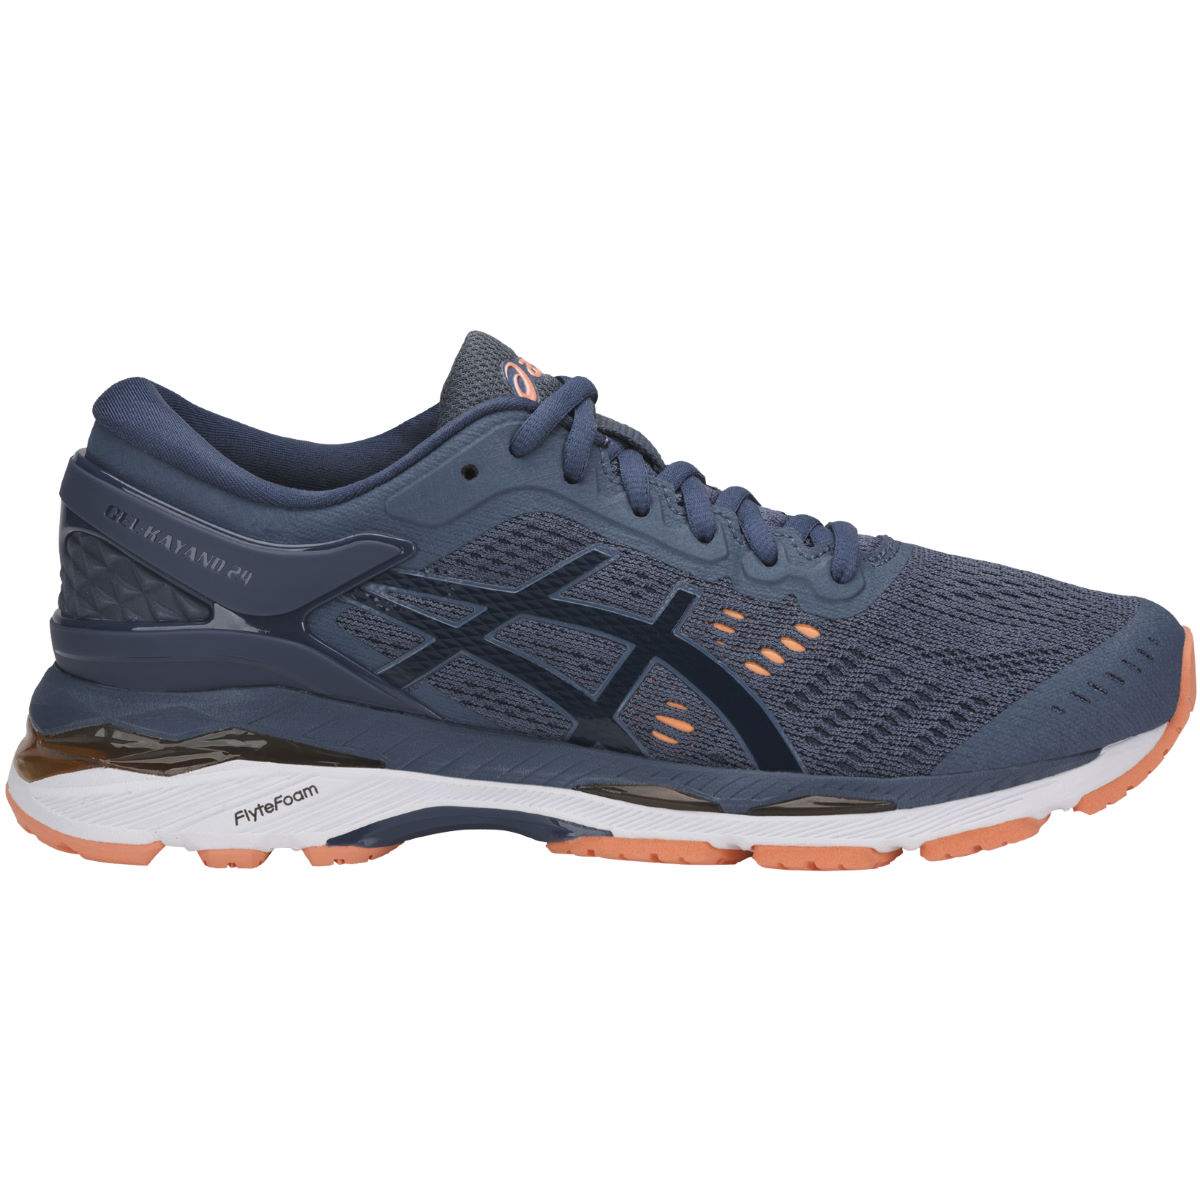 Asics Women's Kayano 24 Shoes   Running Shoes